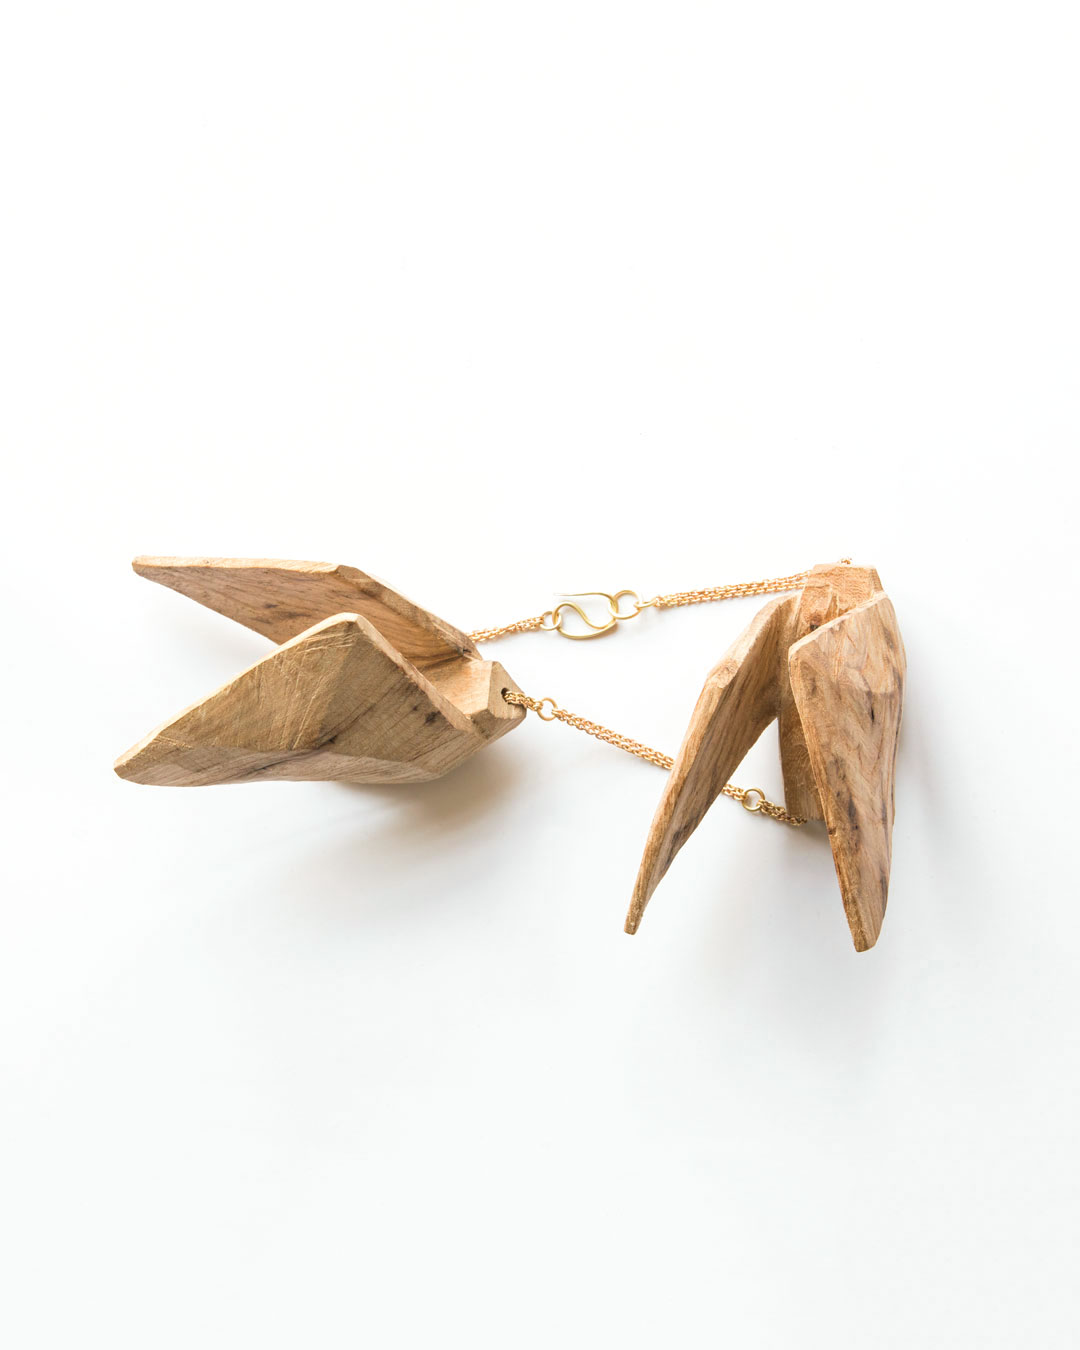 Dorothea Prühl, necklace, Two Large Birds, 2020, elm wood and gold, price on request